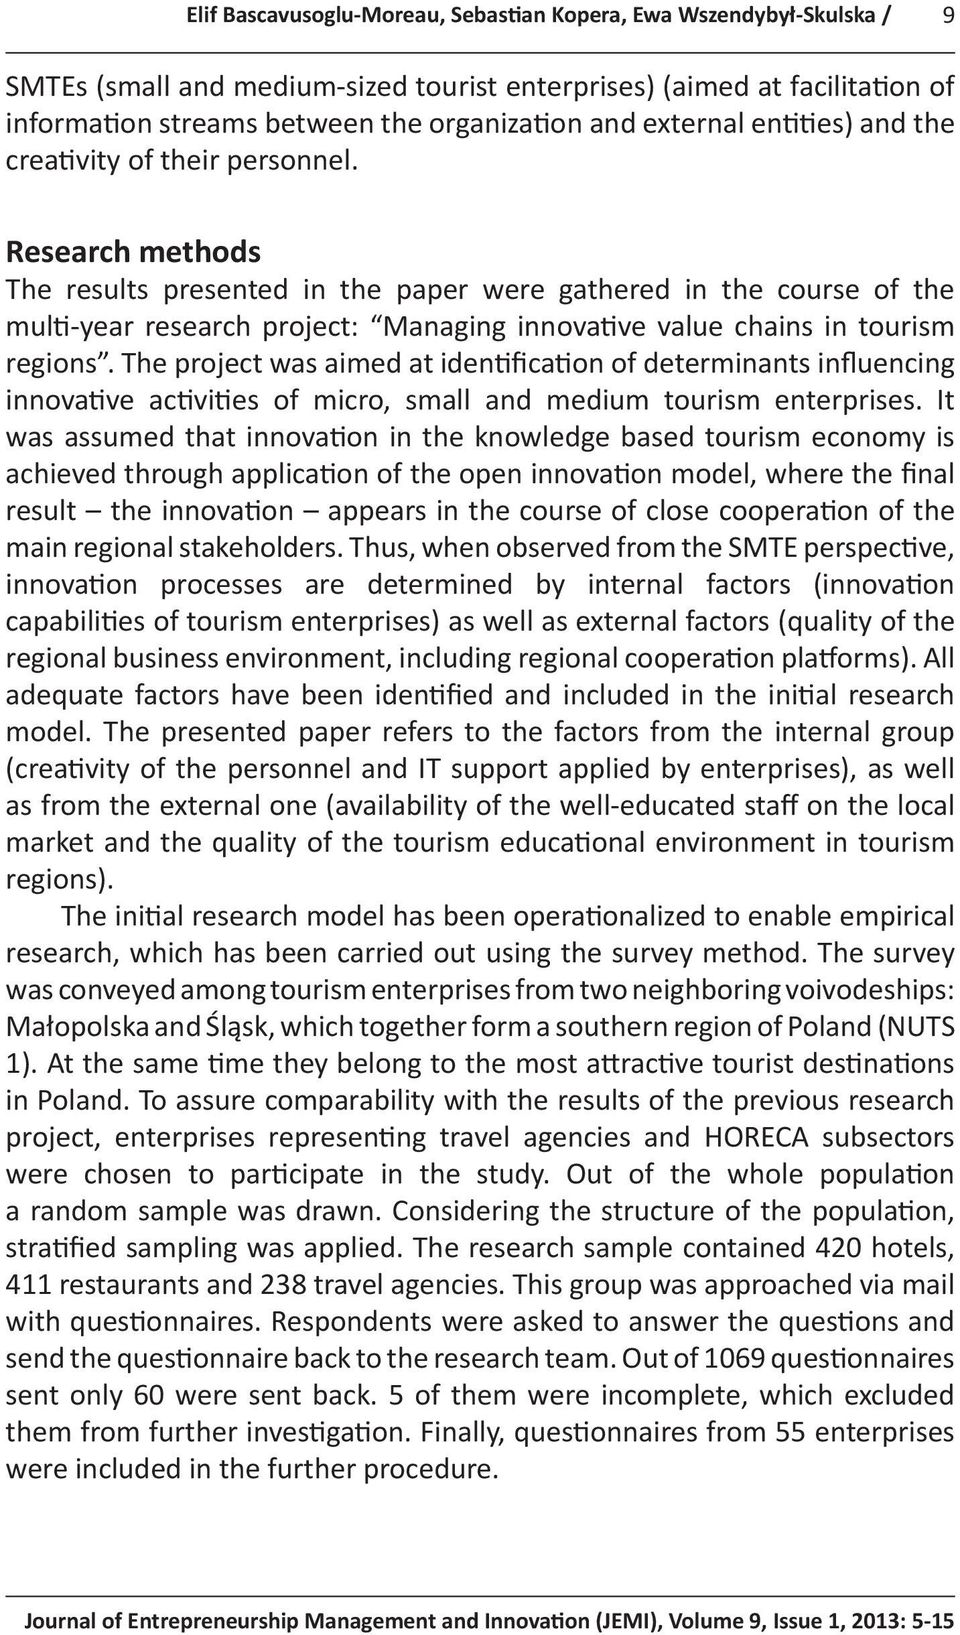 Research methods The results presented in the paper were gathered in the course of the multi-year research project: Managing innovative value chains in tourism regions.